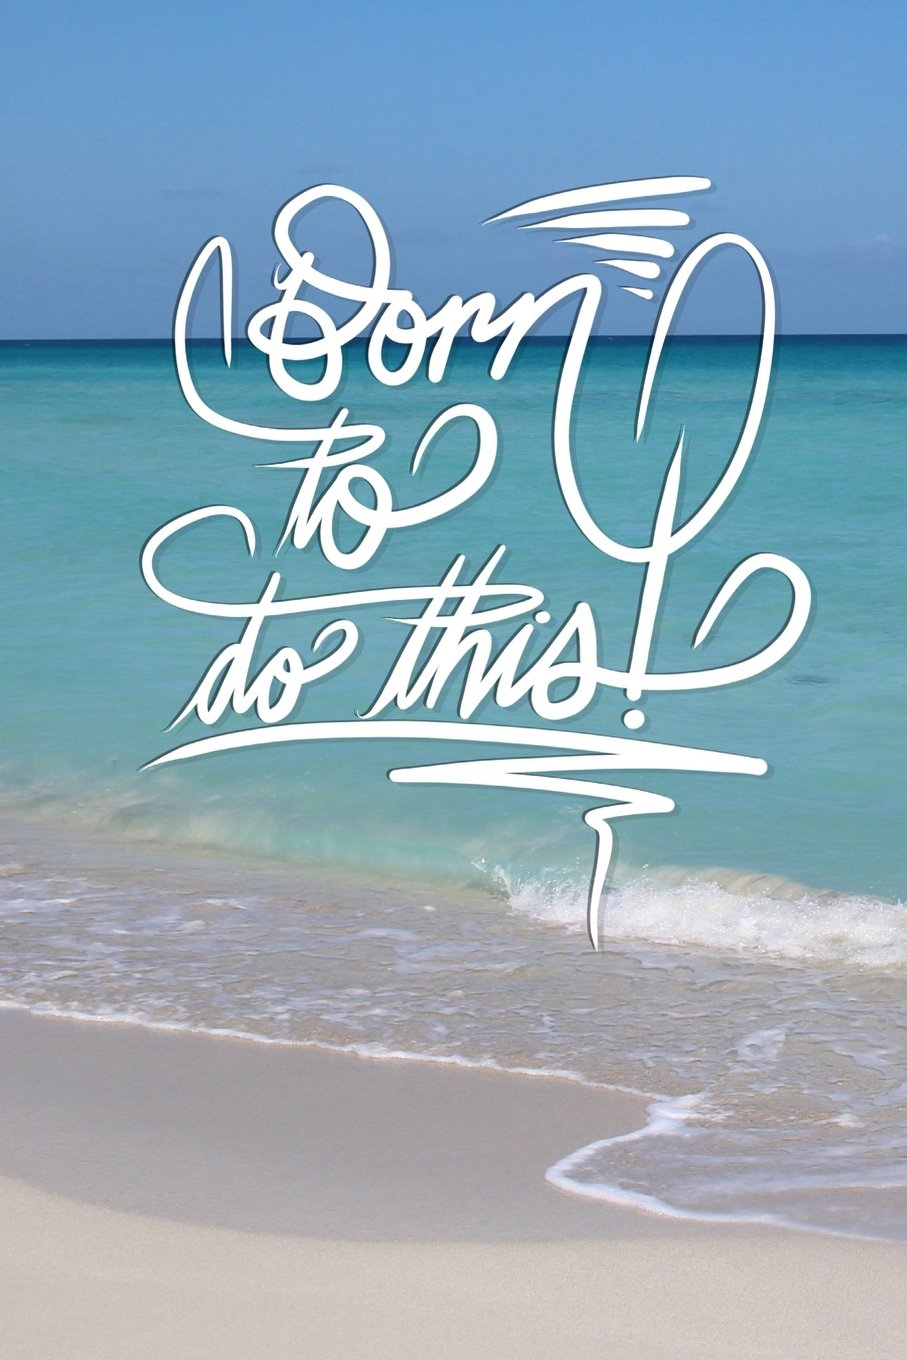 Born to do this: 6x9 Inch Lined Journal/Notebook to remind you that you were born to do this! - Turquoise, Blue, Caribbean sea, Ocean, Beach, Tropical, Calligraphy Art with photography, Gift idea PDF